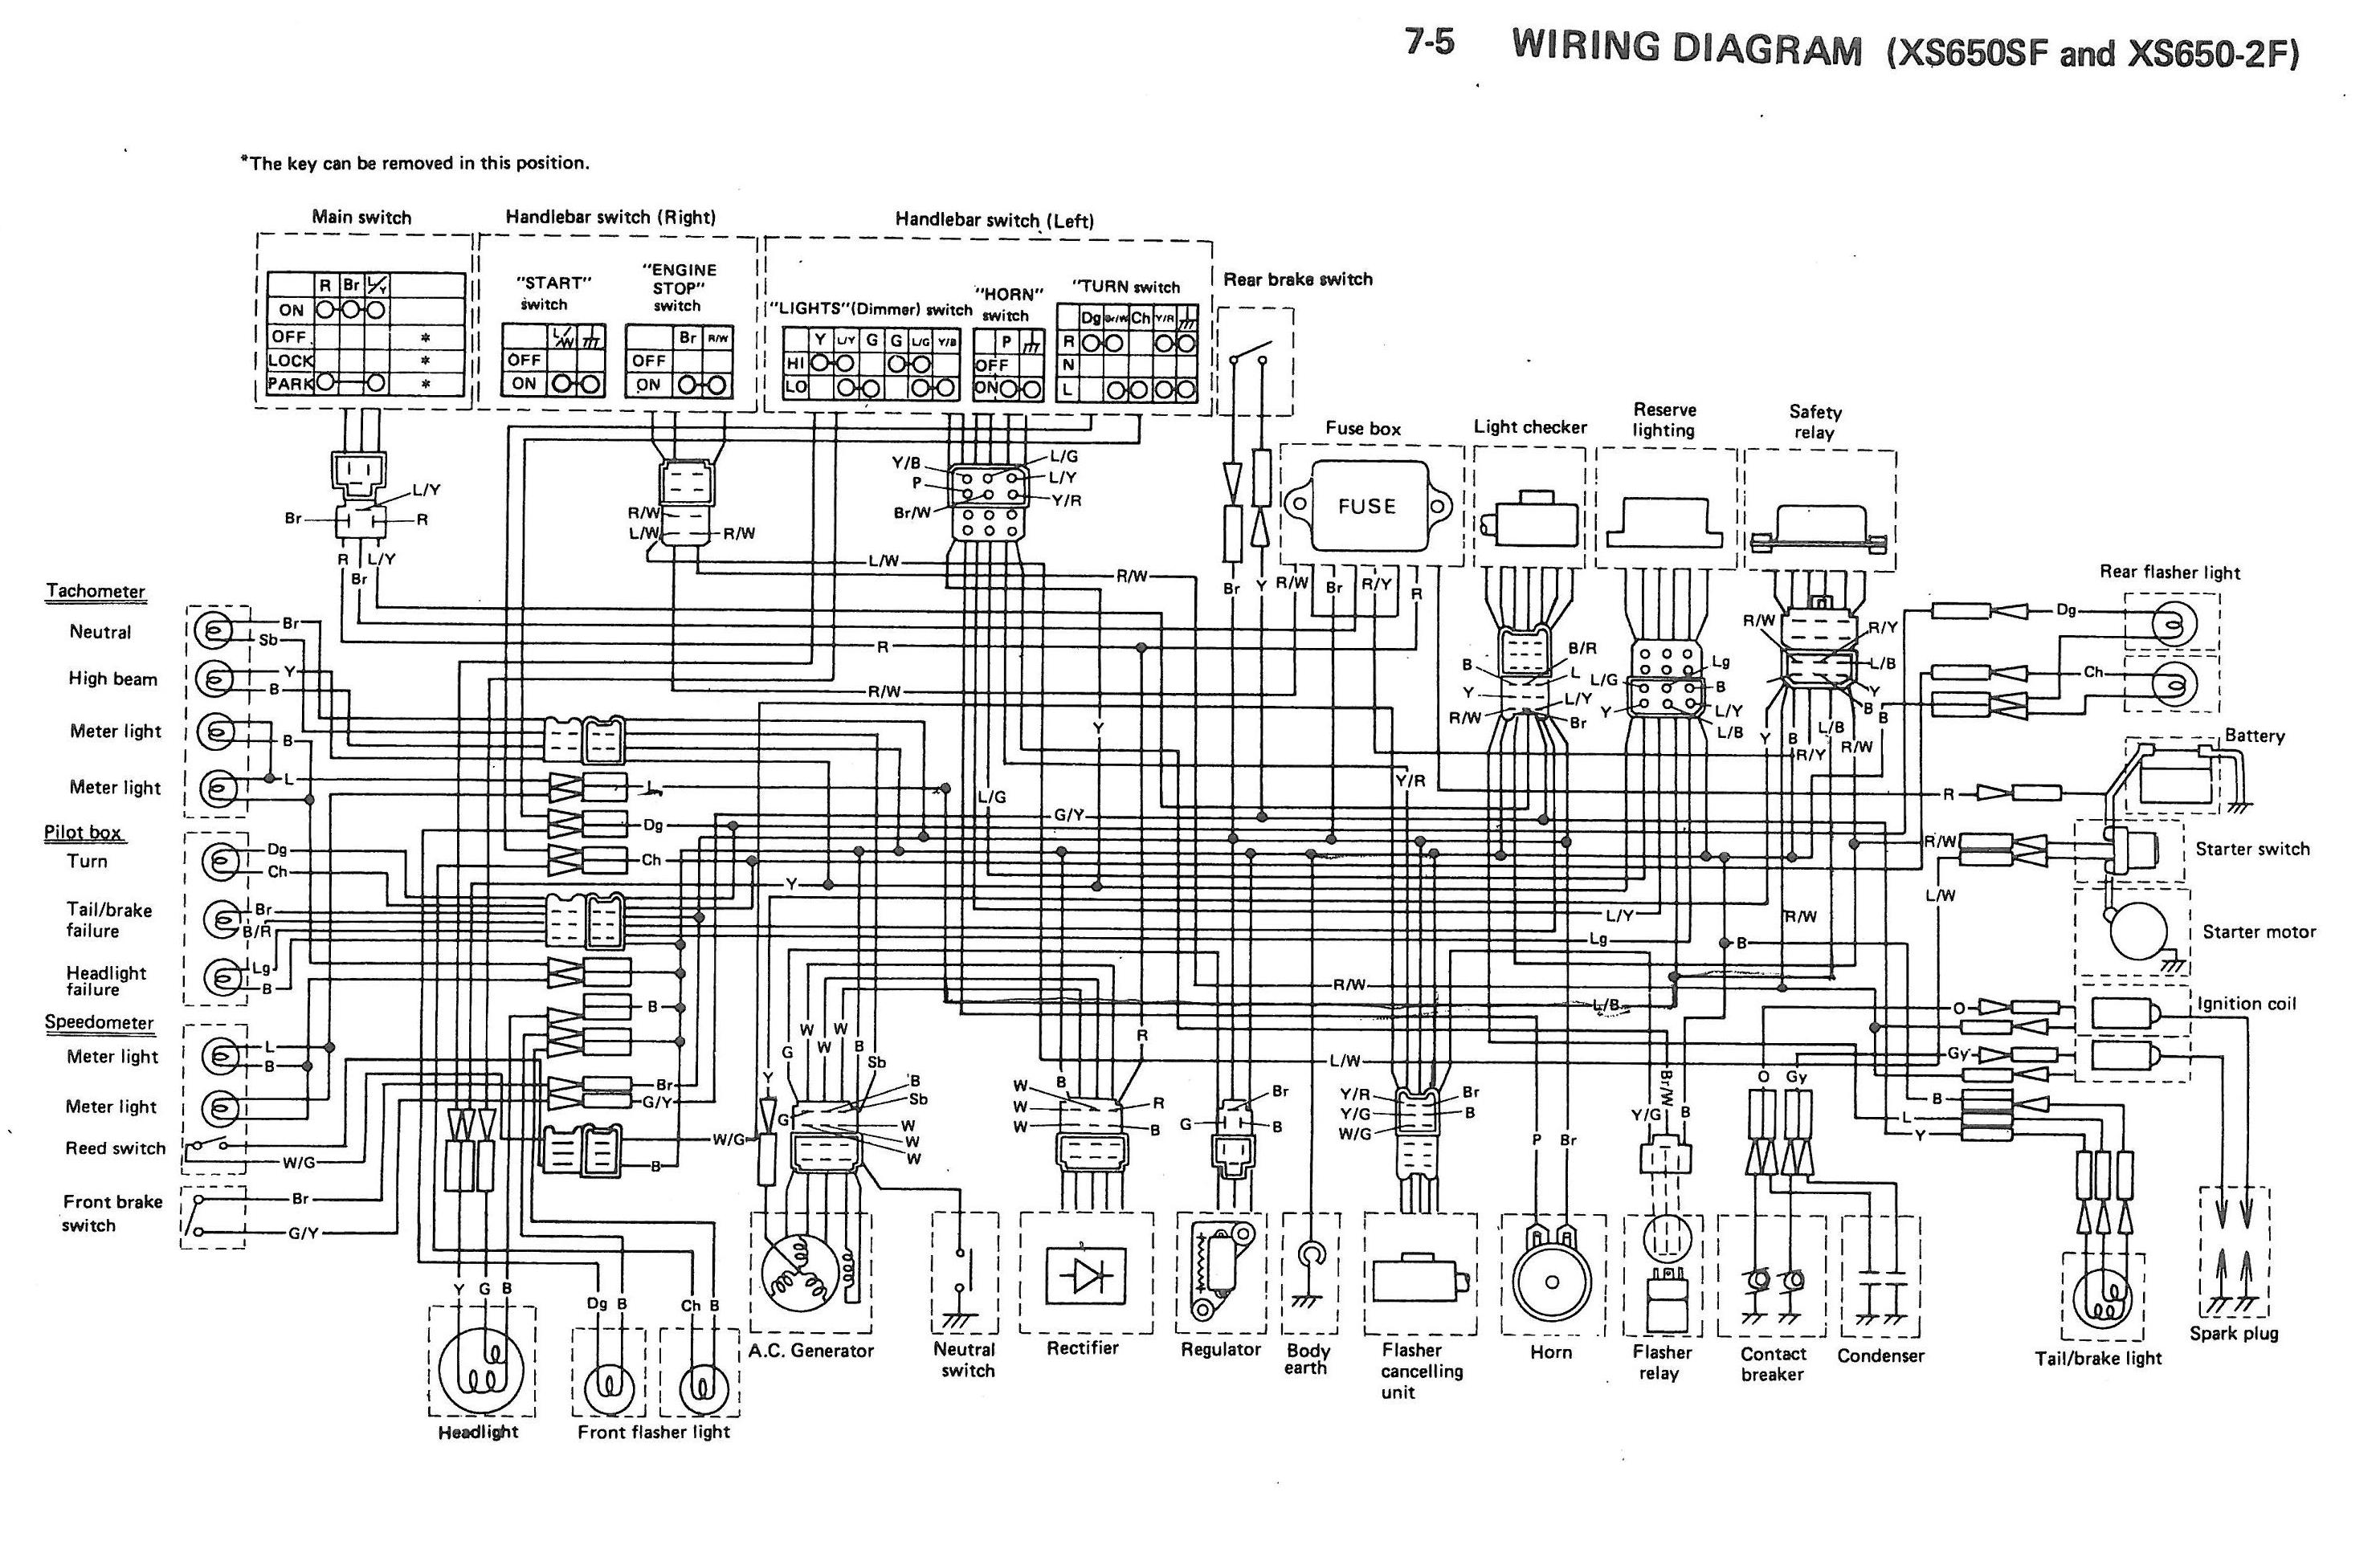 Xs650 Wiring Diagram Data Honda Cb650 79 Xs650sf 2f Diagrams Thexscafe Virago